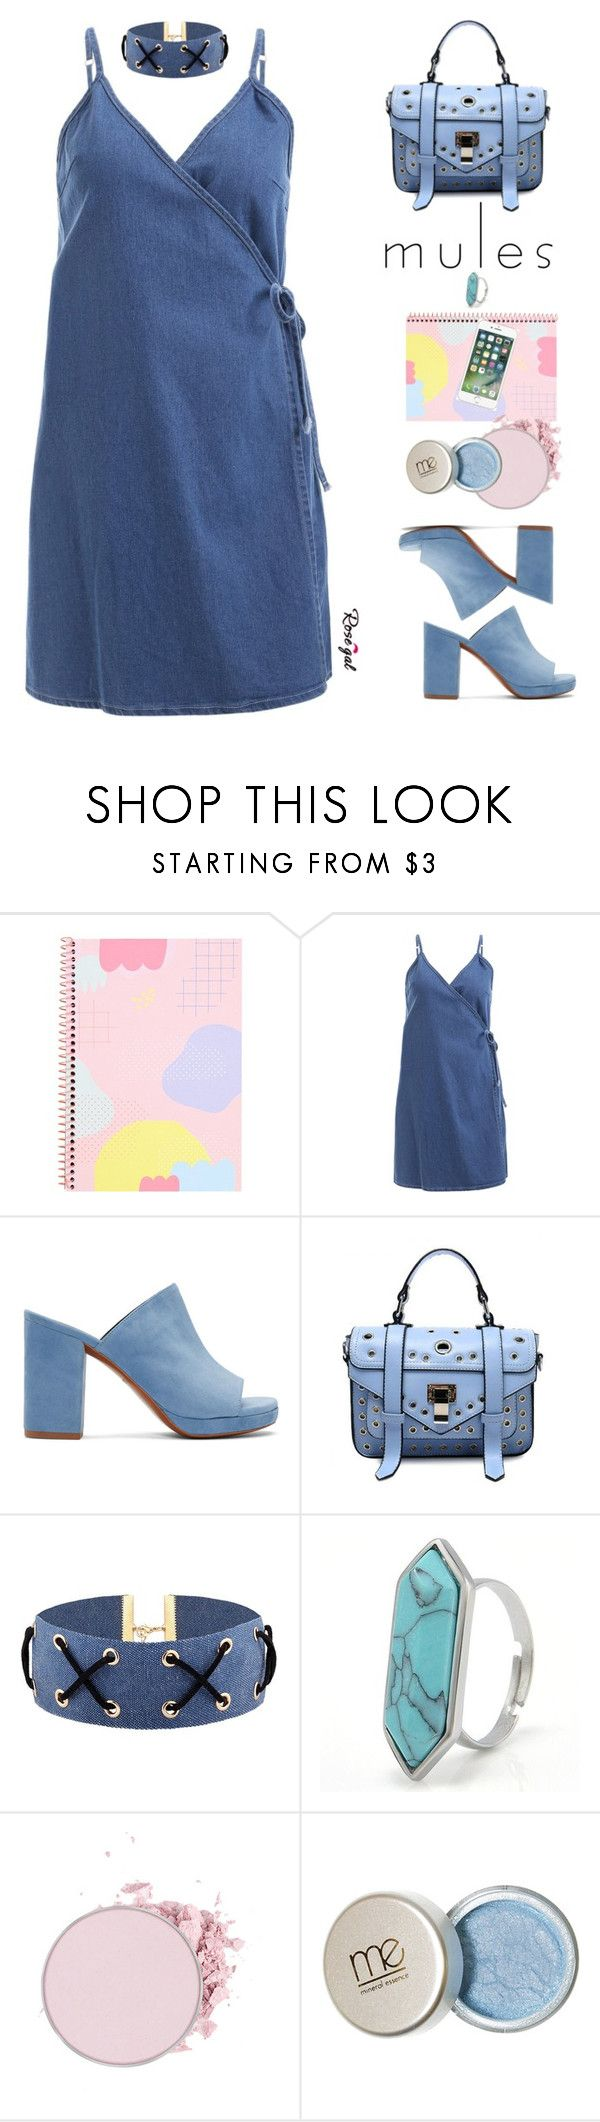 """75. Rosegal mules style"" by wannanna ❤ liked on Polyvore featuring Robert Clergerie"